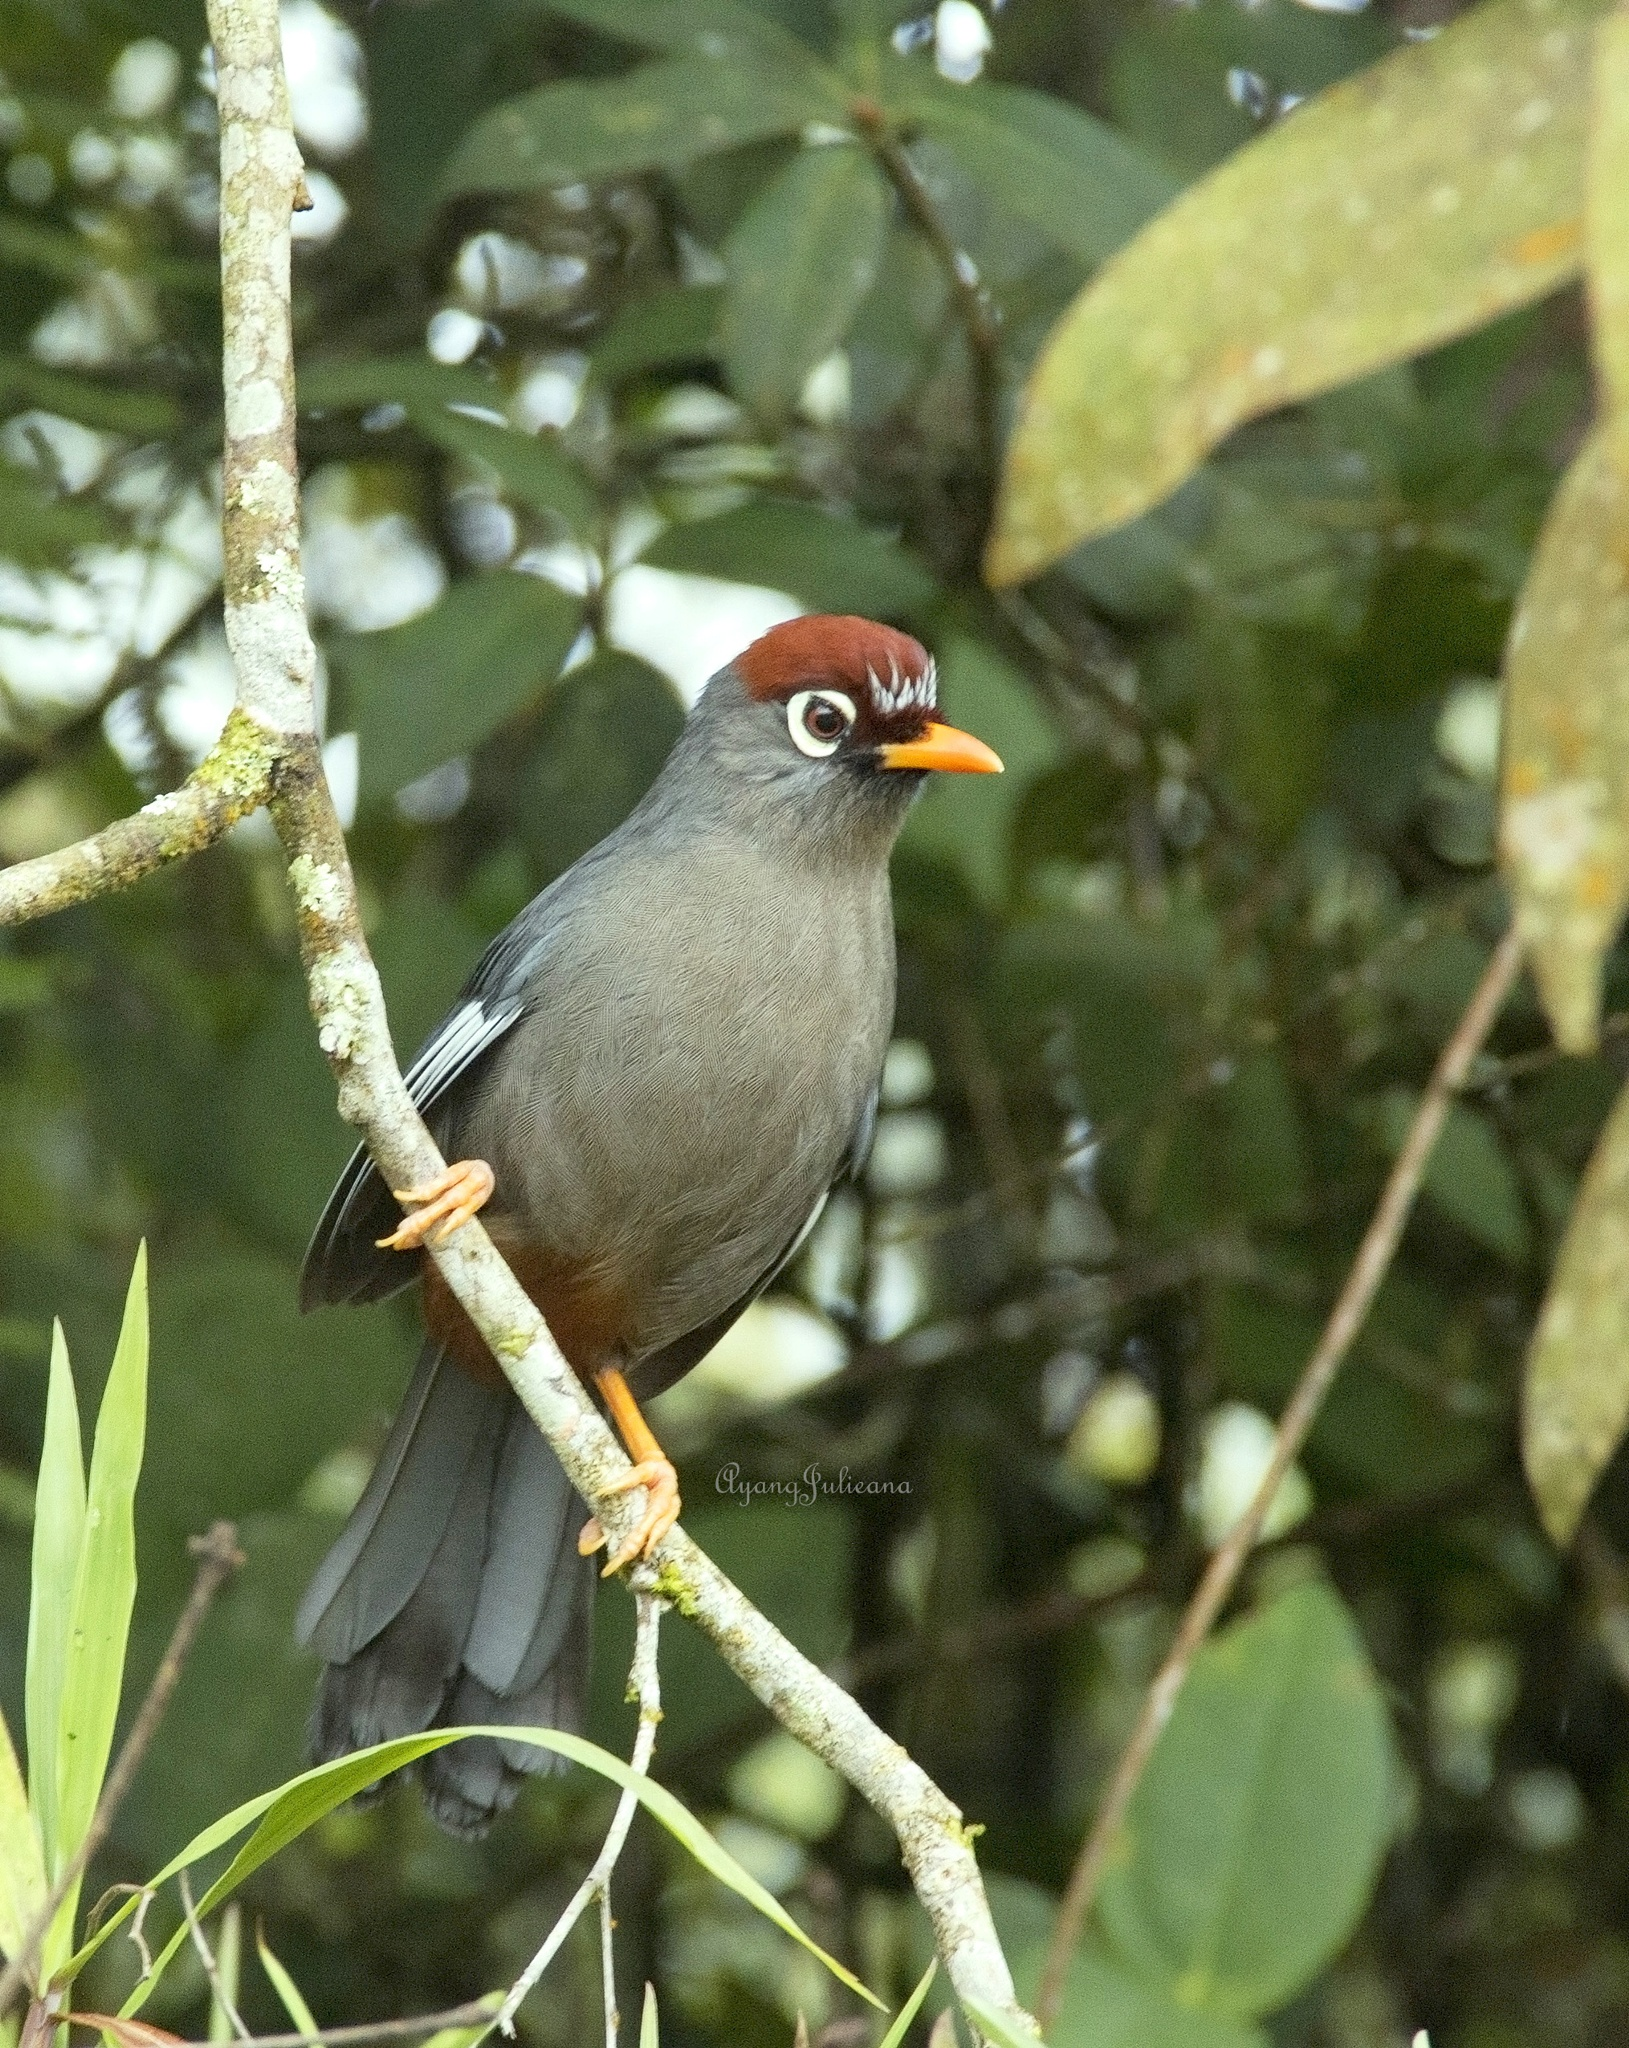 Chestnut-capped Laughingthrush (Gaulurax mitratus) by Ayang Julieana Mohamed